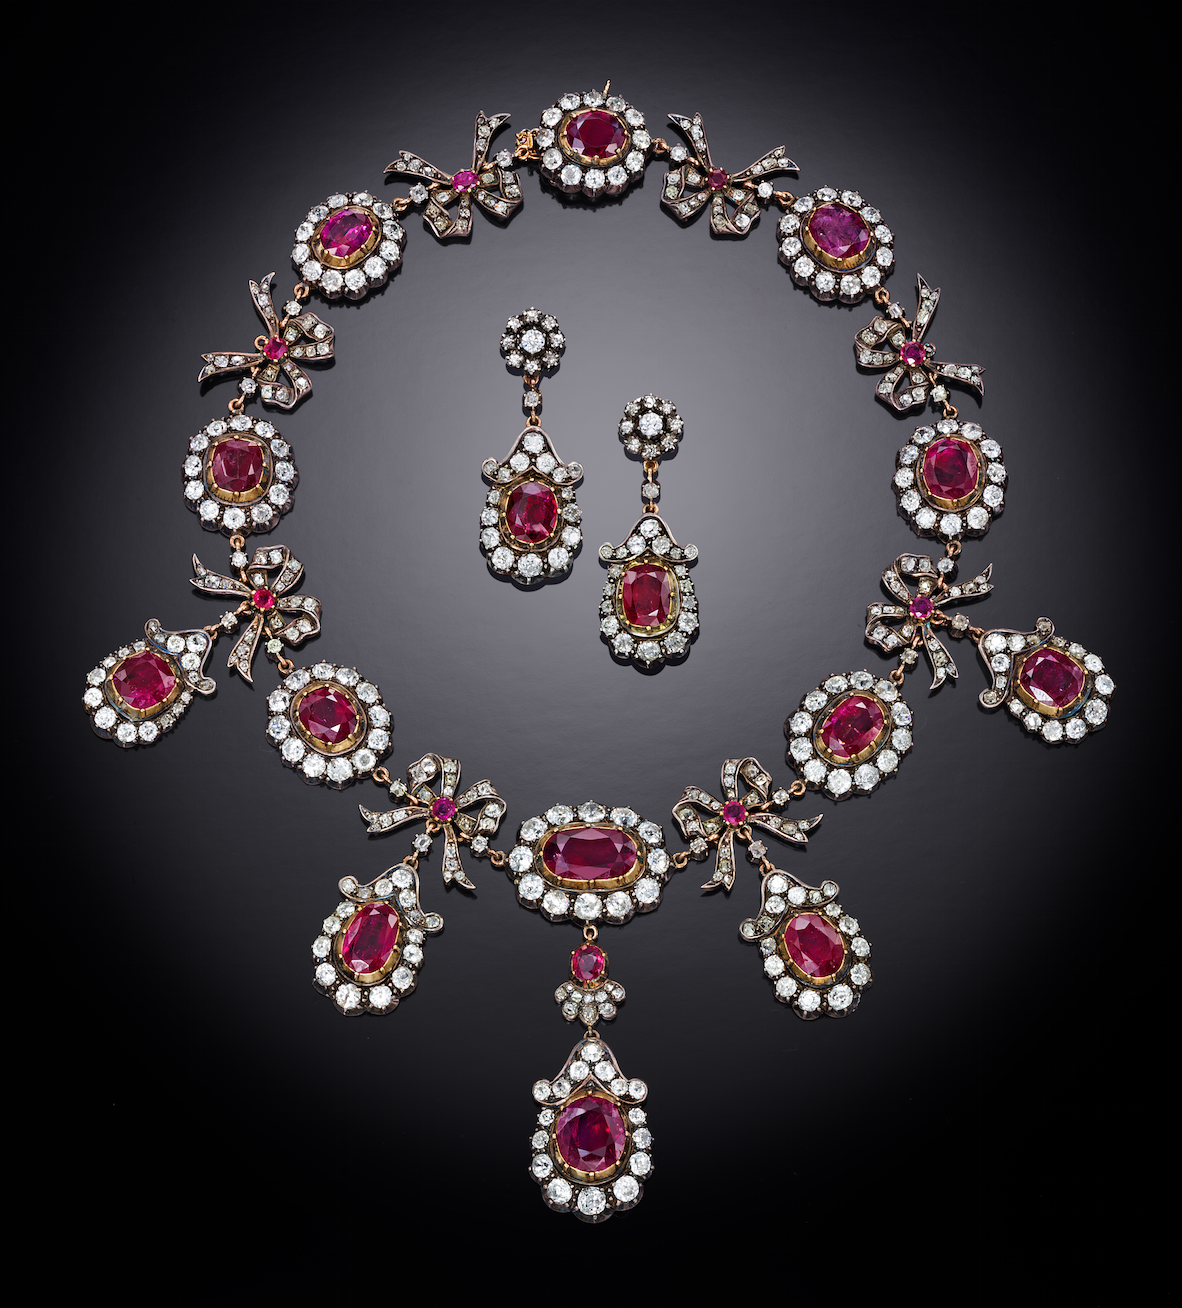 Antique-and-diamond-necklace-and-earrings